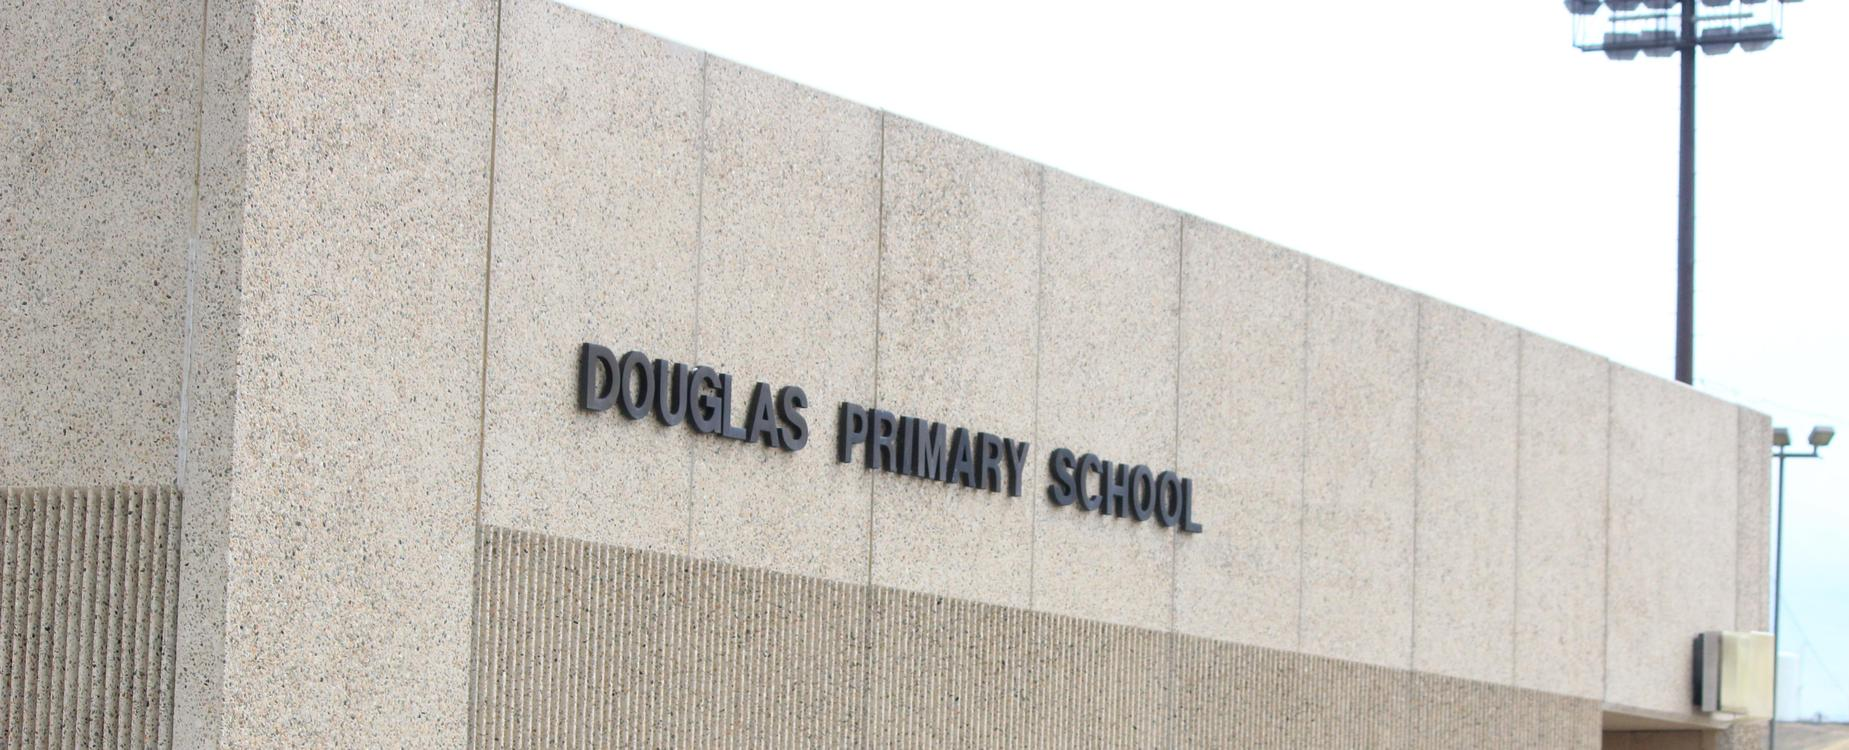 DPS building, letters on building